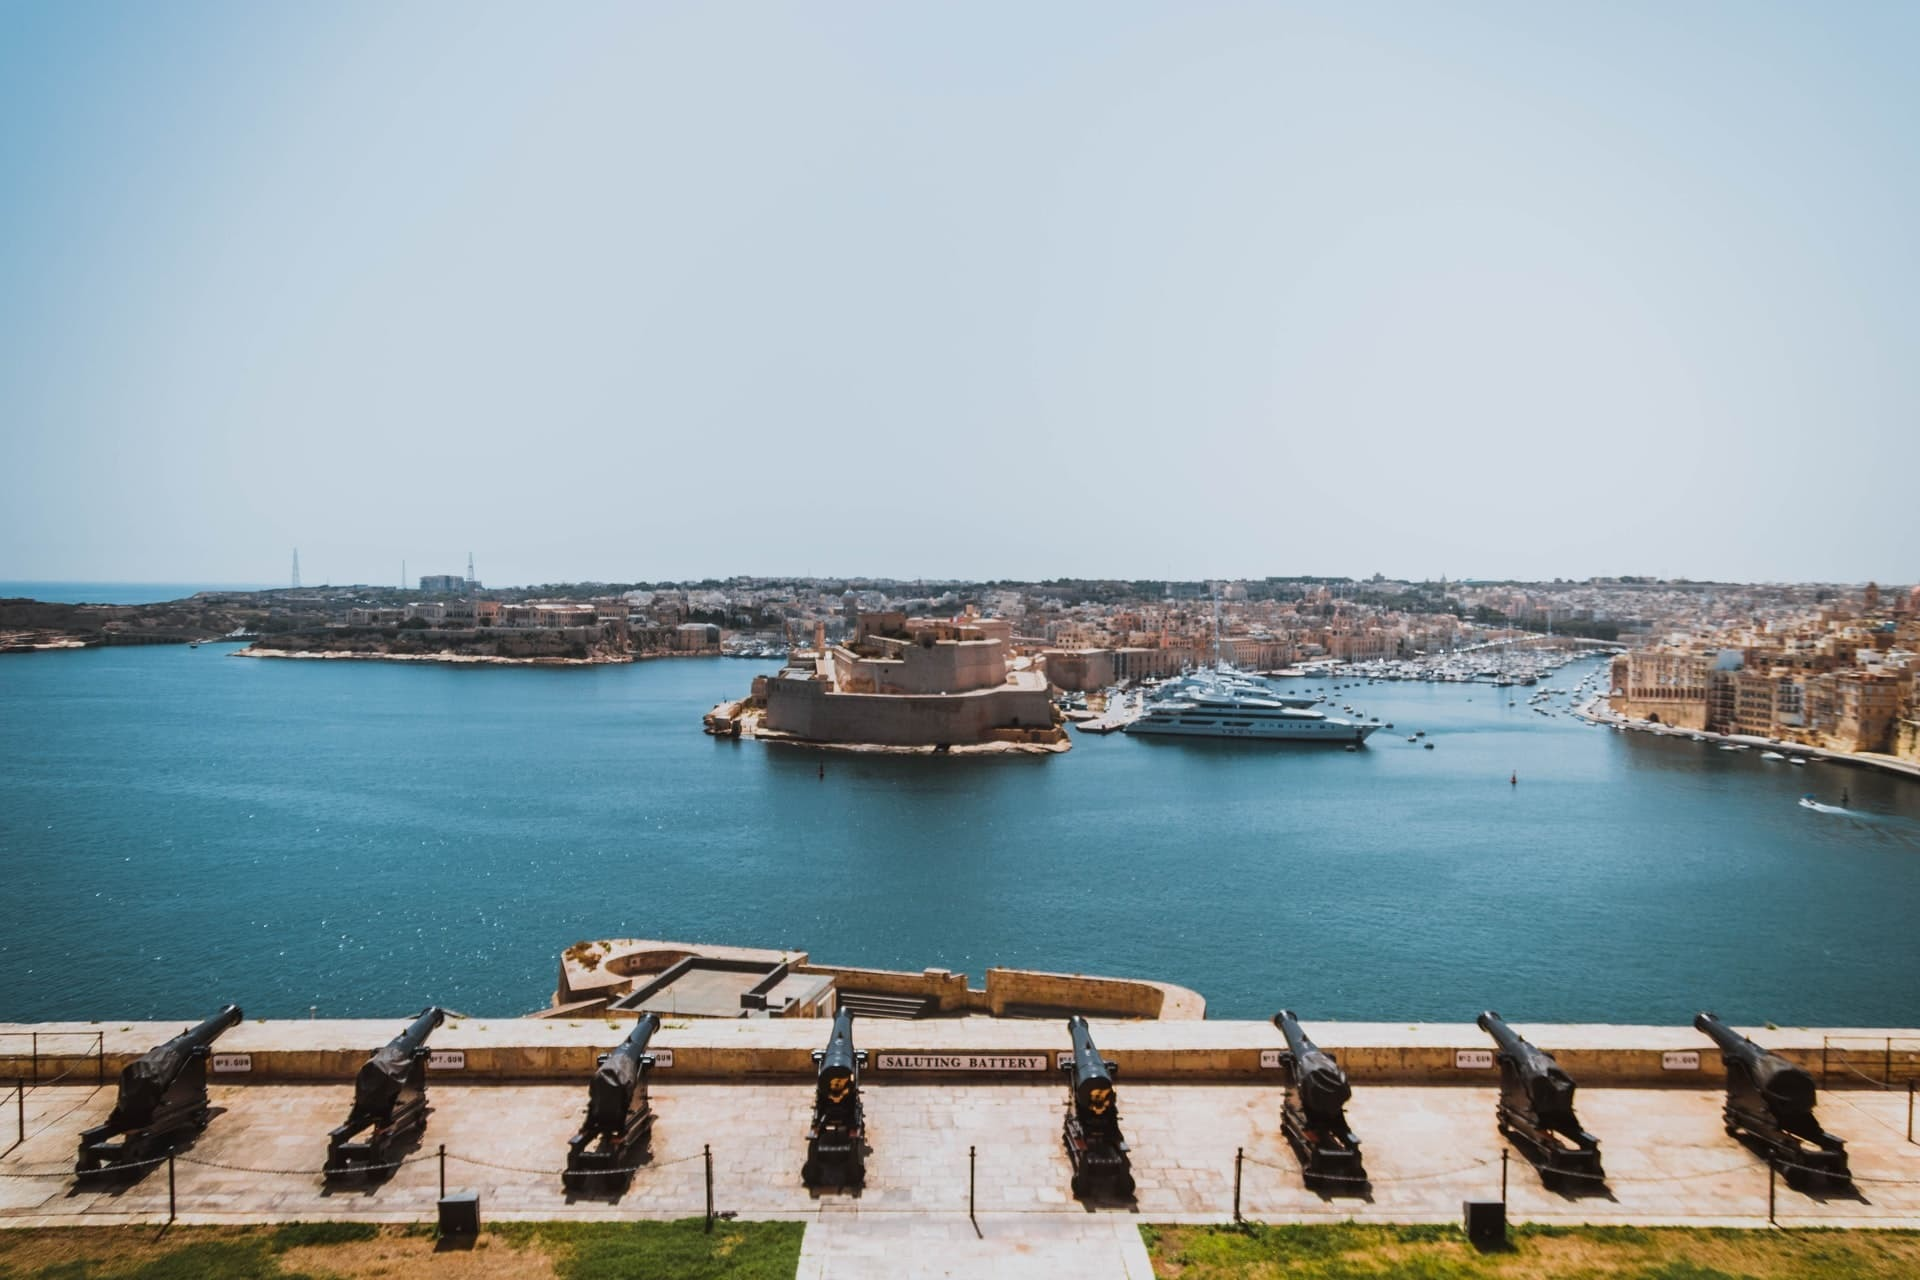 How to find a job in Malta?